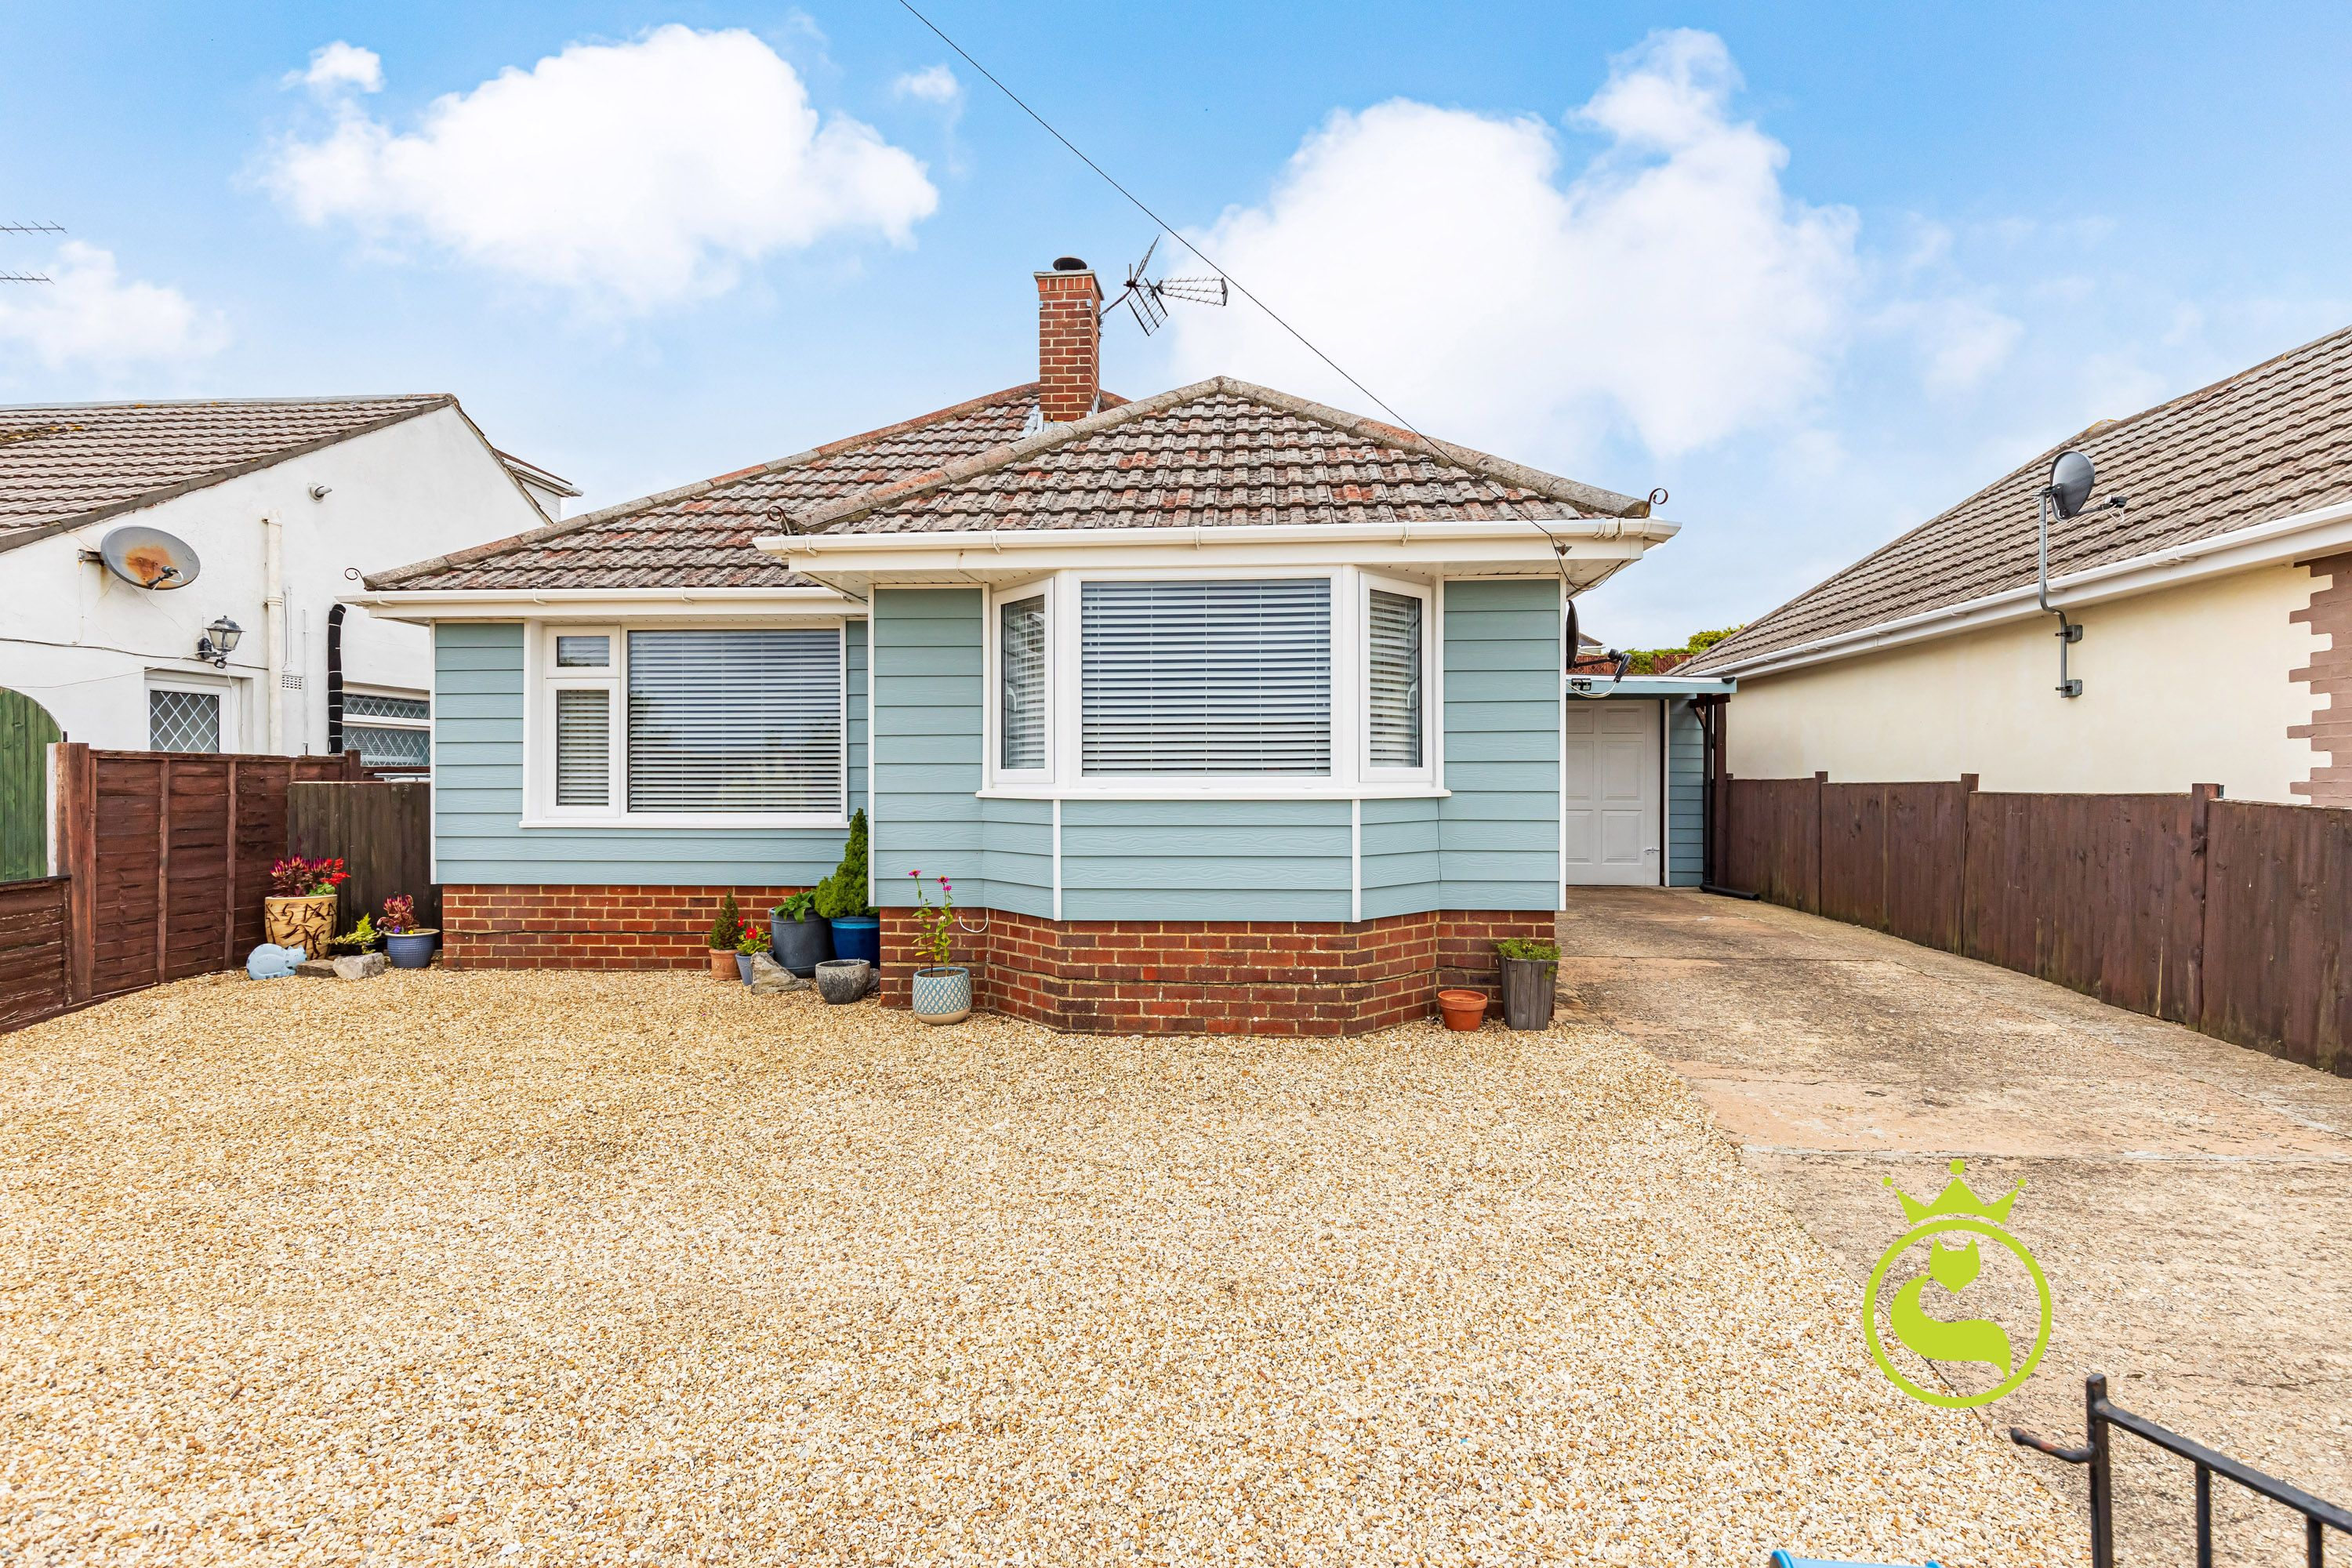 **LAUNCHING 23RD OCTOBER - BY APPOINTMENT ONLY** An extremely well presented two bedroom detached chalet bungalow in a popular location in the heart of Parkstone. The property is being offered with no forward chain.